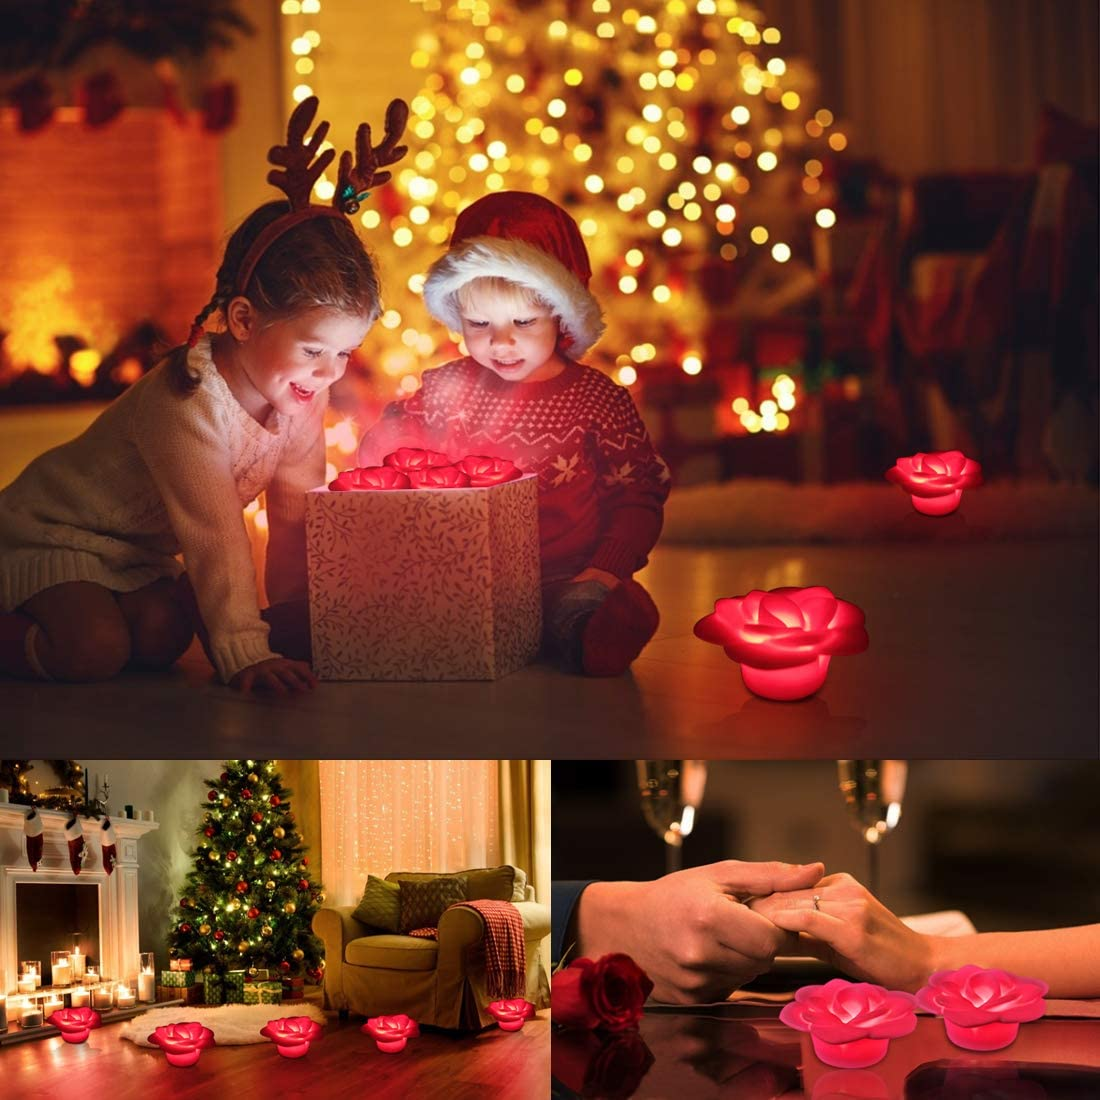 Hot Tub Light Up Flower Light Gift for Propose Lover Friends Wedding Family Children Birthday Party Swimming -2pcs IP68 Waterproof Floating Pool Light LED Spa Night Light LED Bathtub Light